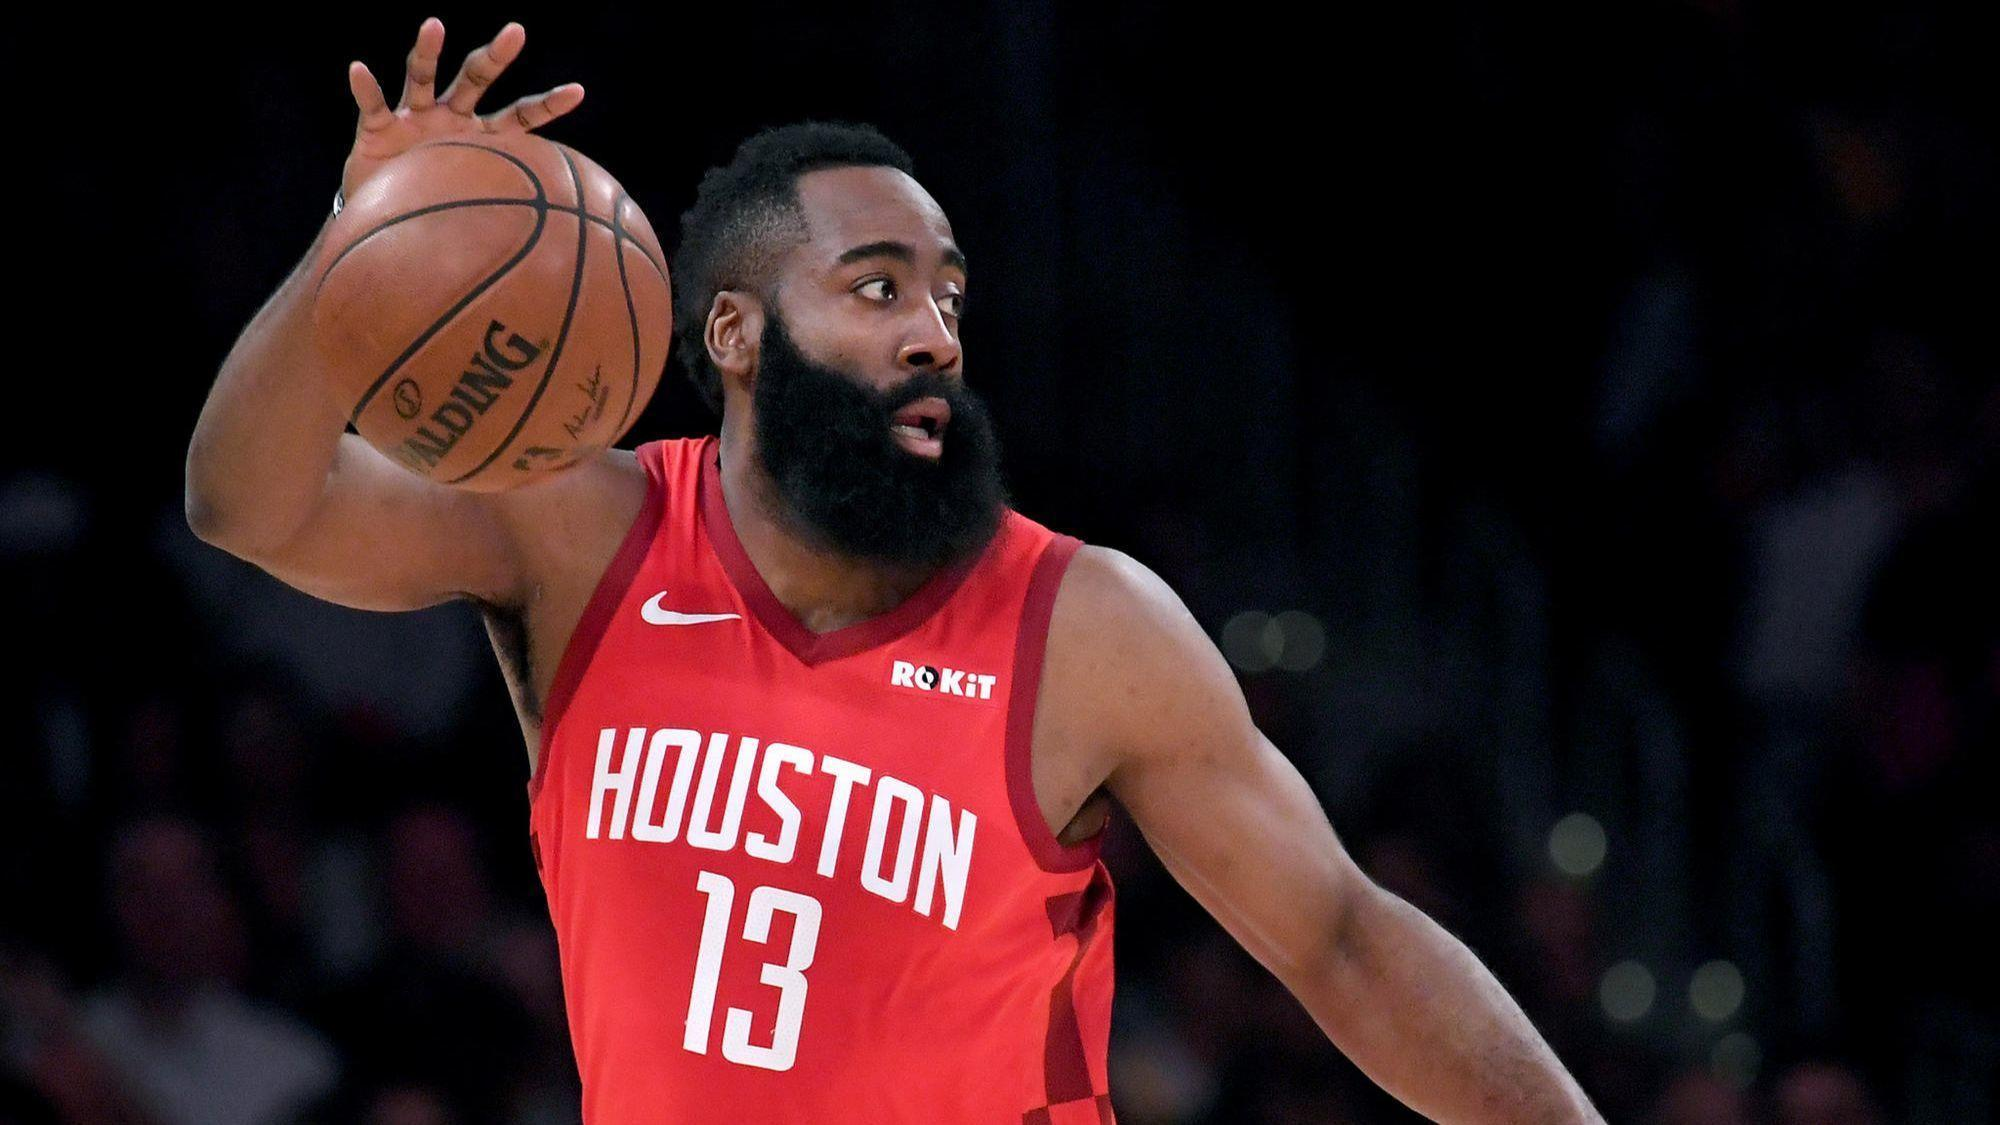 NBA fines Rockets' James Harden $25,000 for criticizing officials